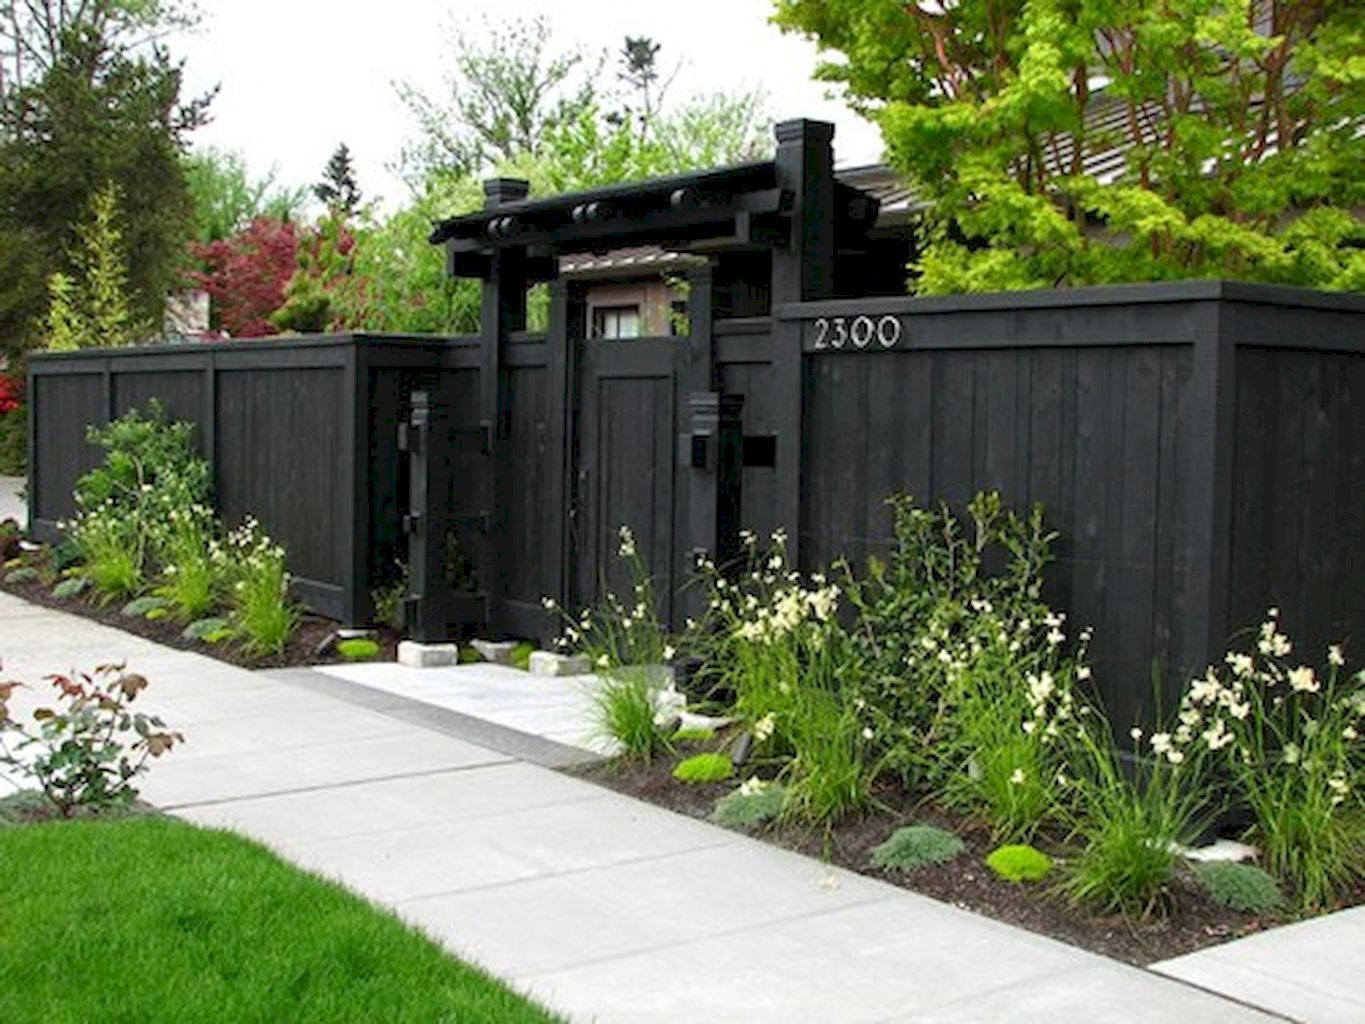 75 Affordable Backyard Privacy Fence Design Ideas | Privacy fence ...